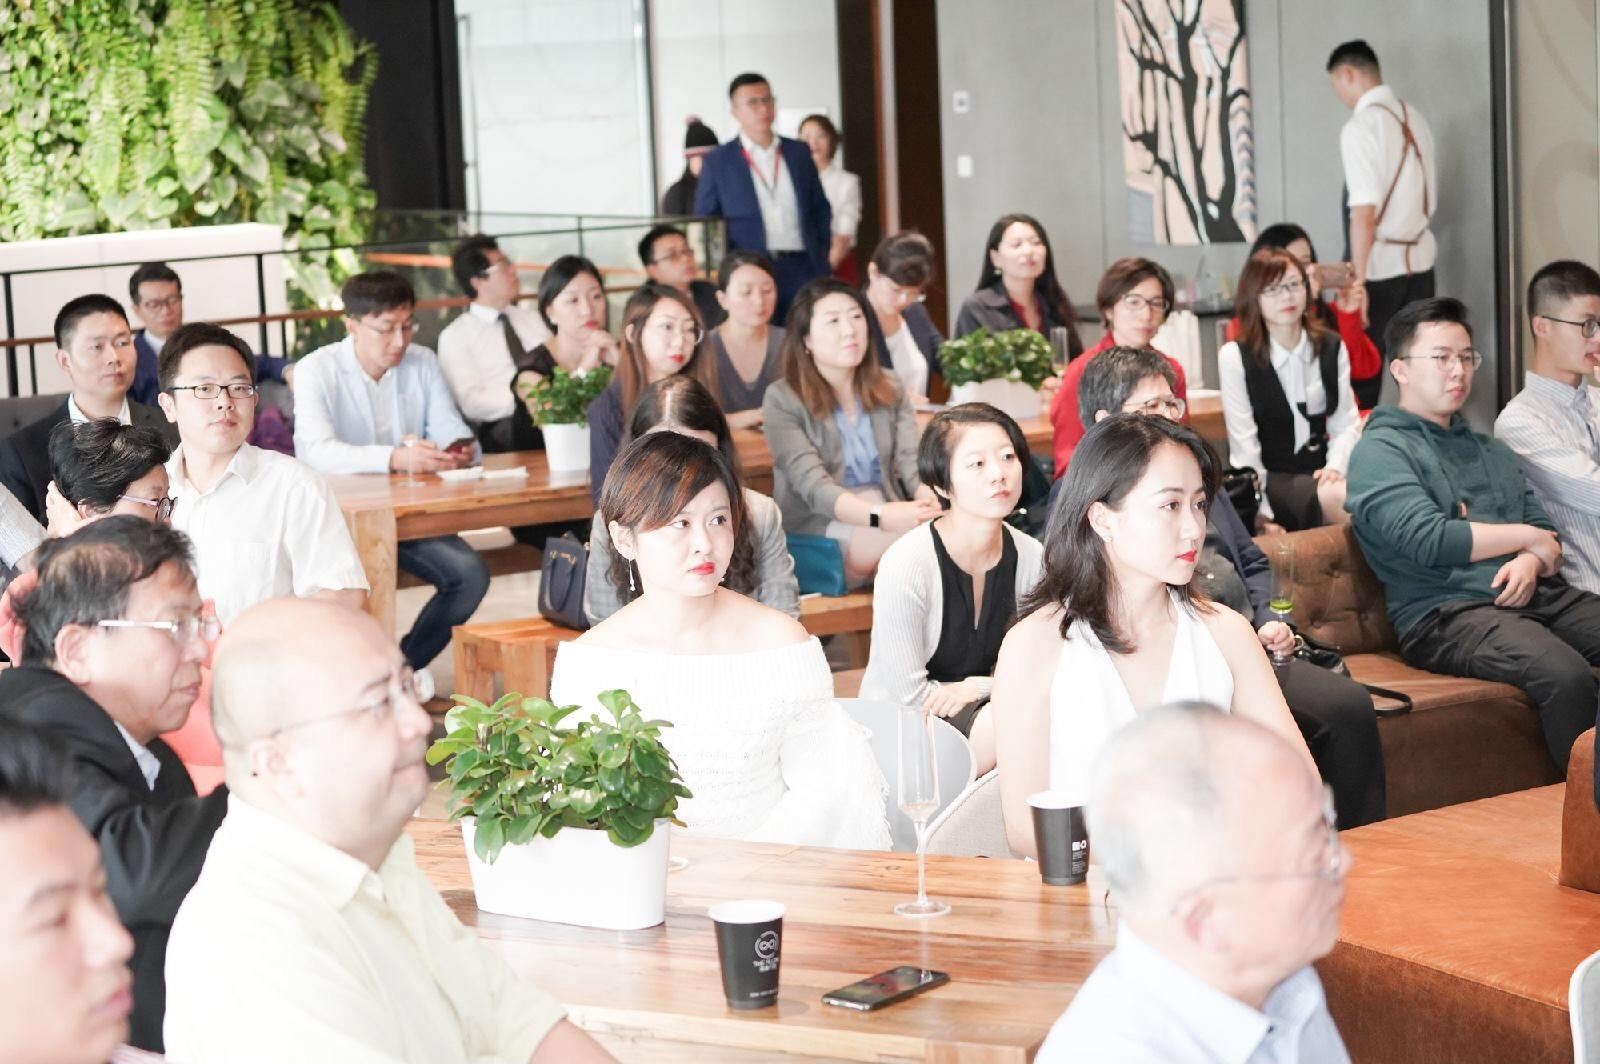 The event attracted many Swiss alumni, institutions and companies in the vocational education industry.